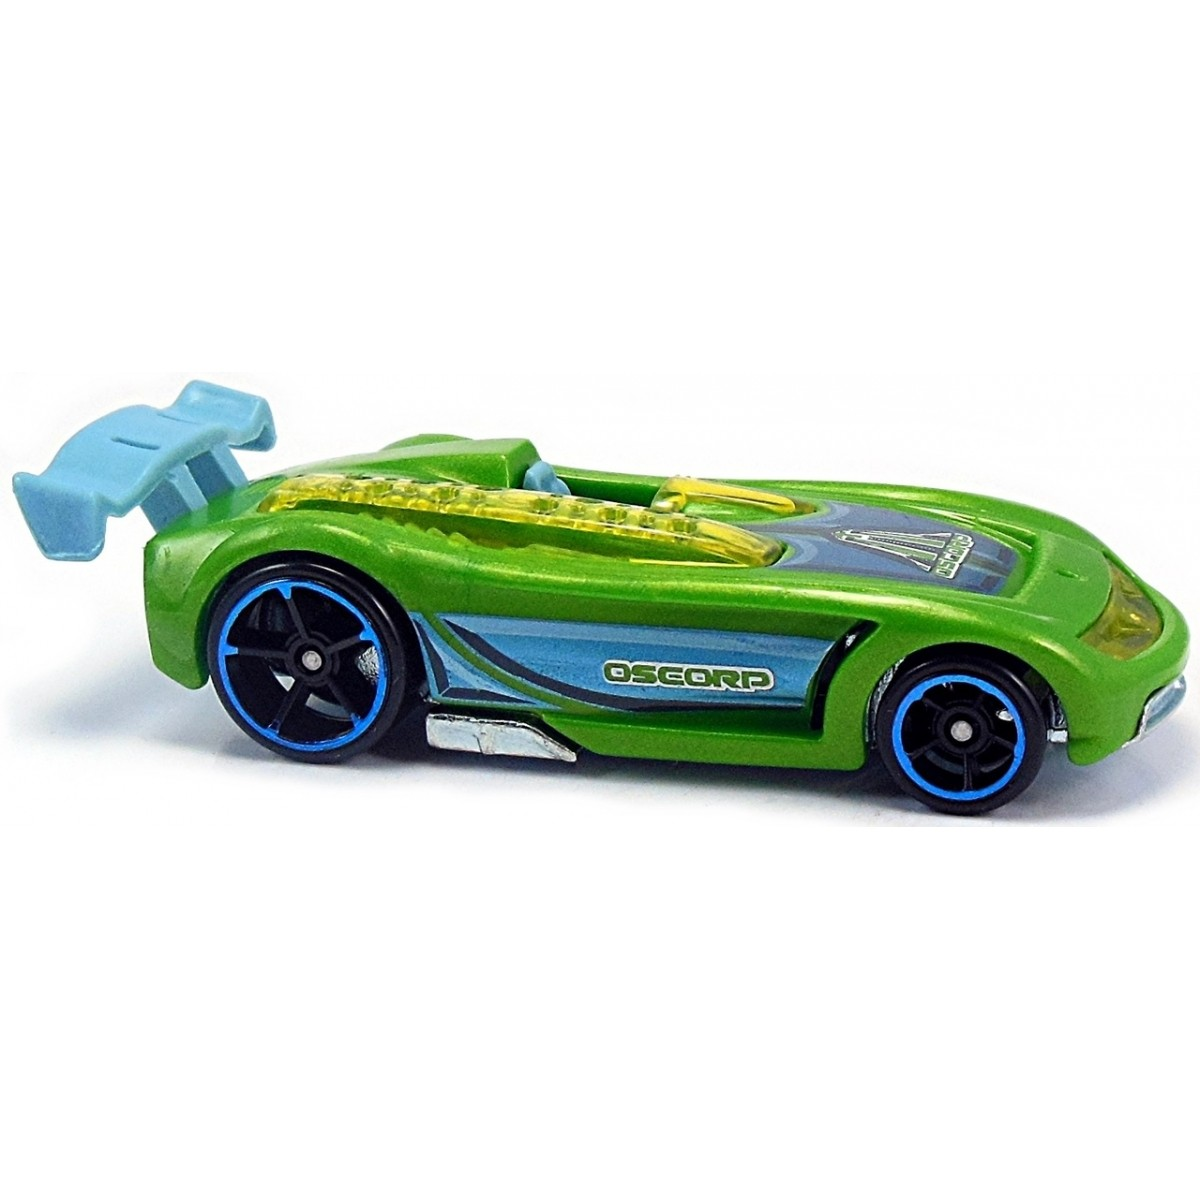 Carrinho Hot Wheels: Battle Spec: Ultimate Spider-Man Sinister 6 Verde